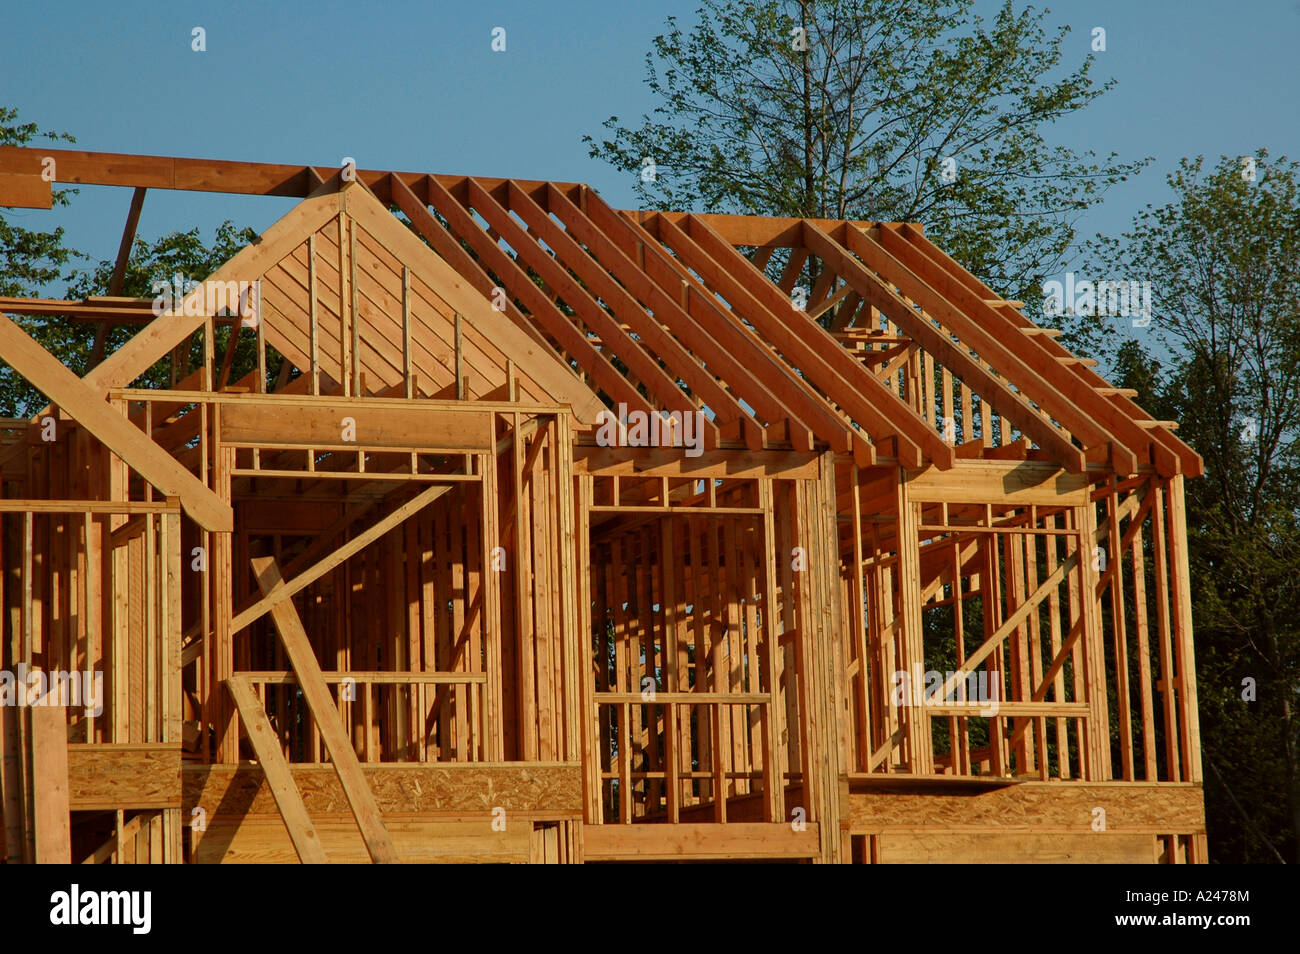 A house under construction in the framing stage stock for Stages in house construction